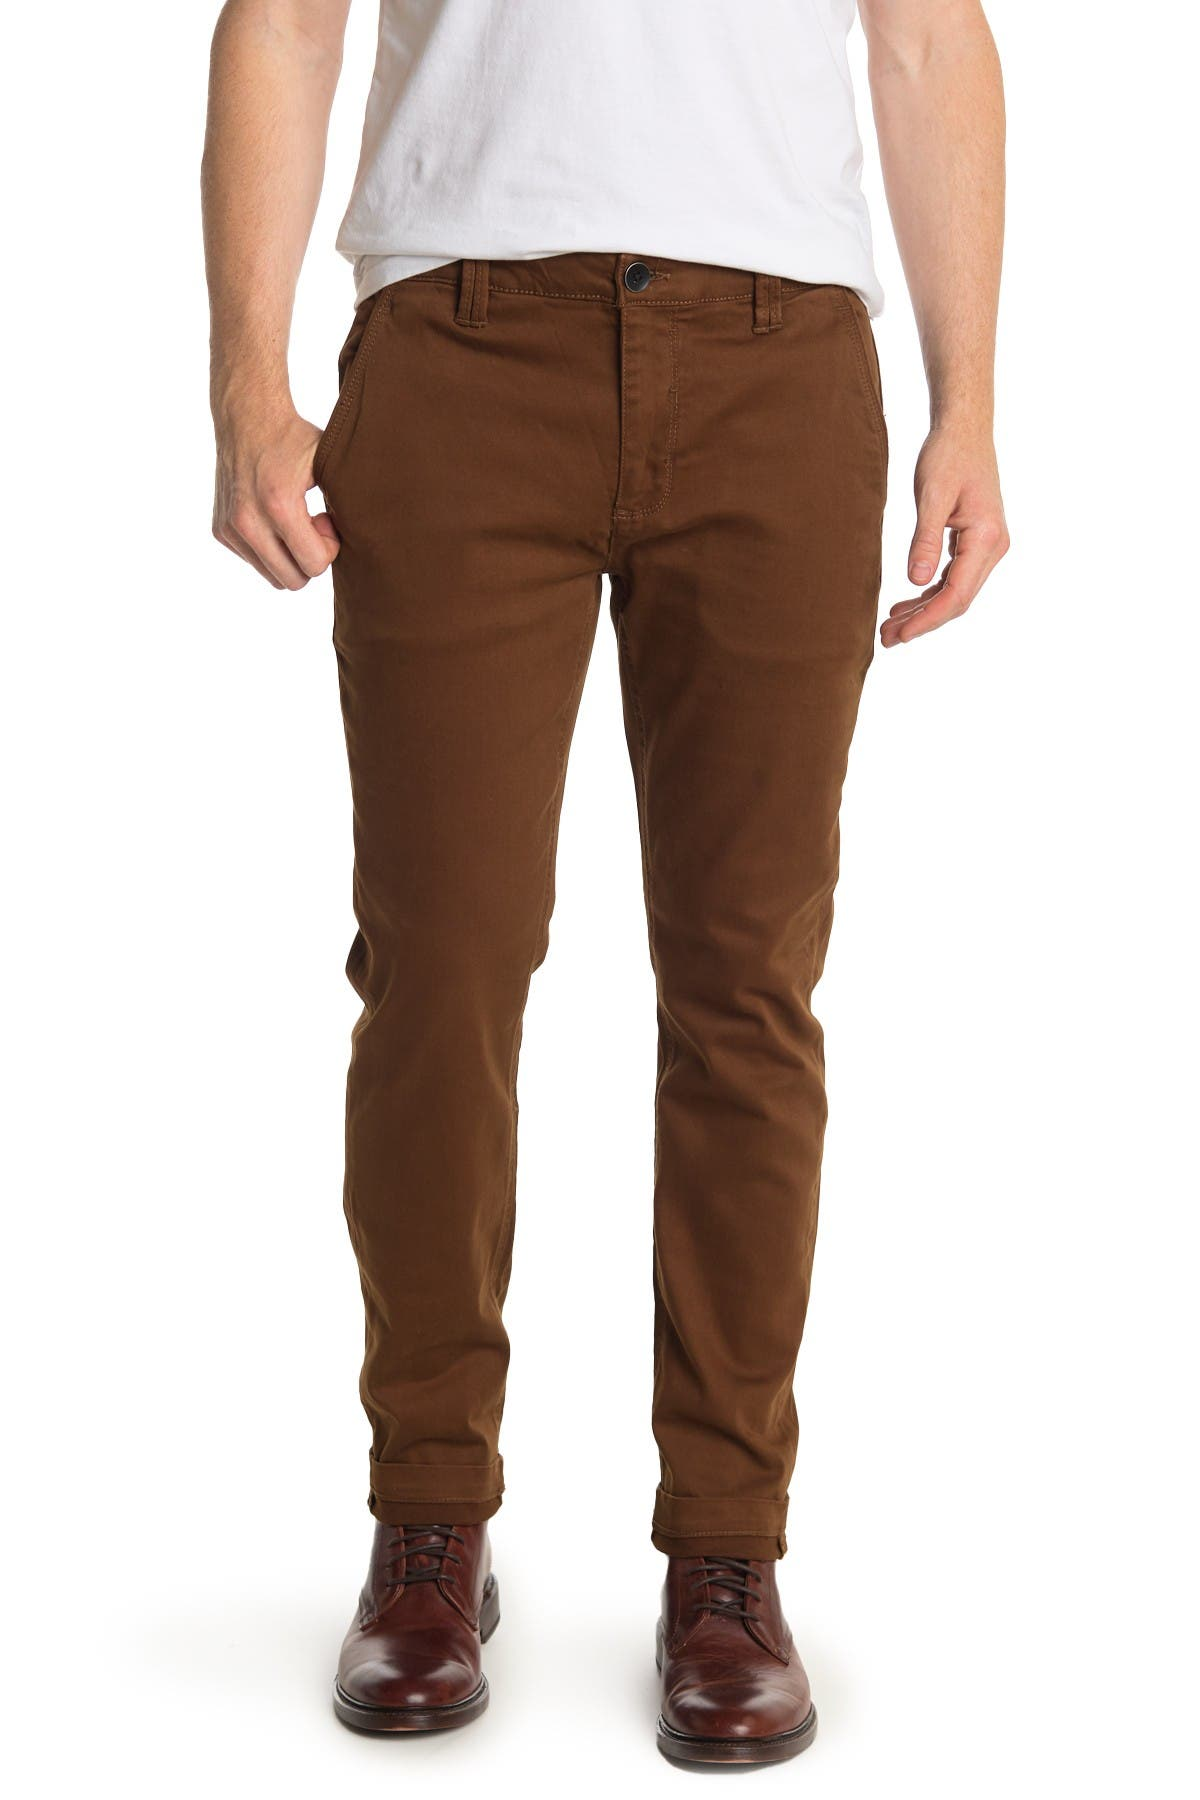 Image of BLANKNYC Denim Solid Straight Leg Chinos